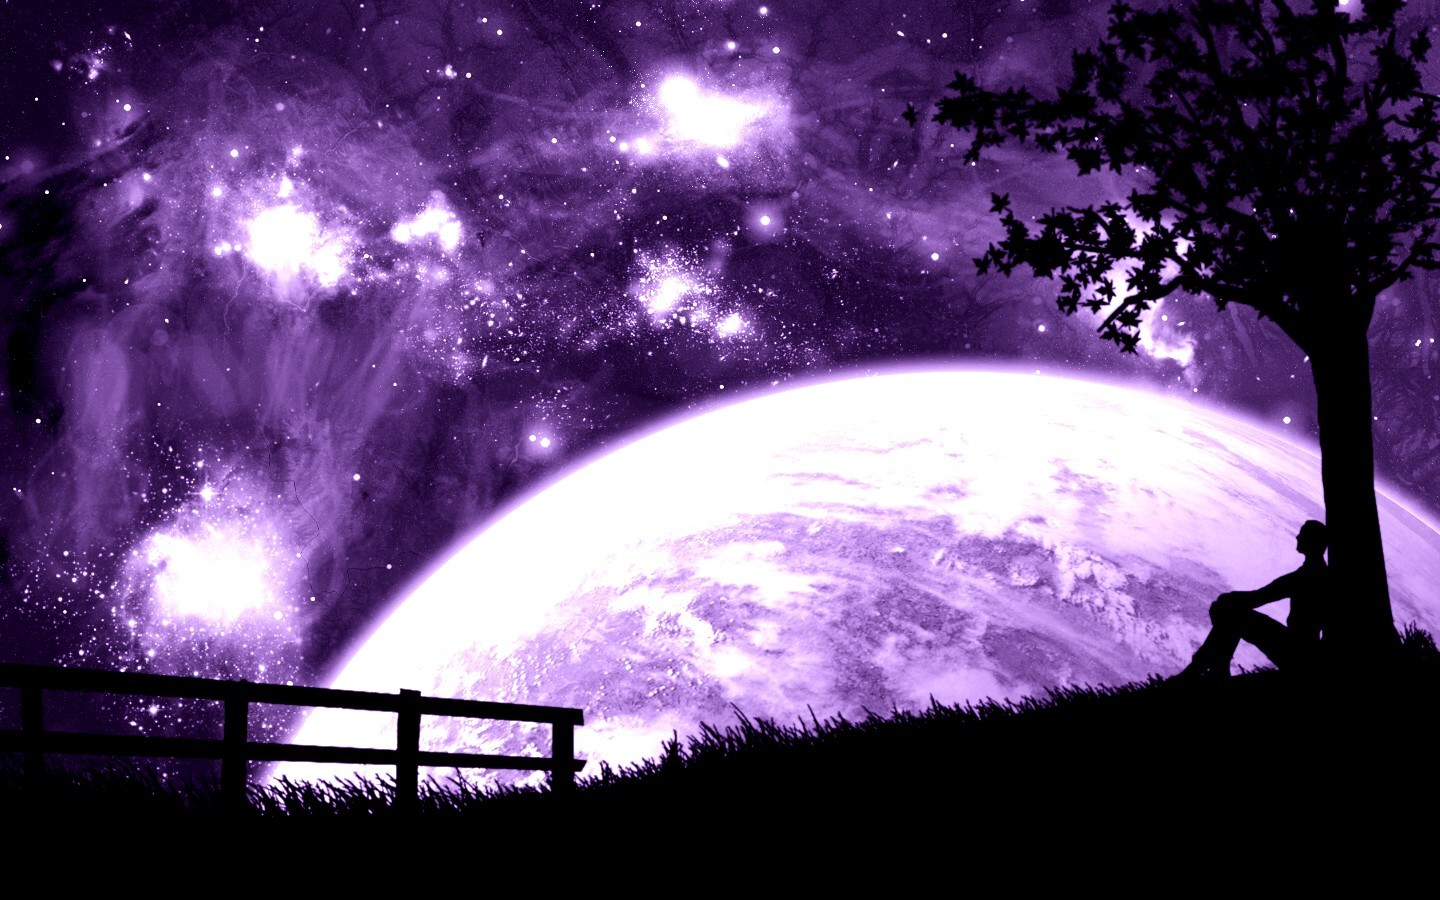 outer space planets purple